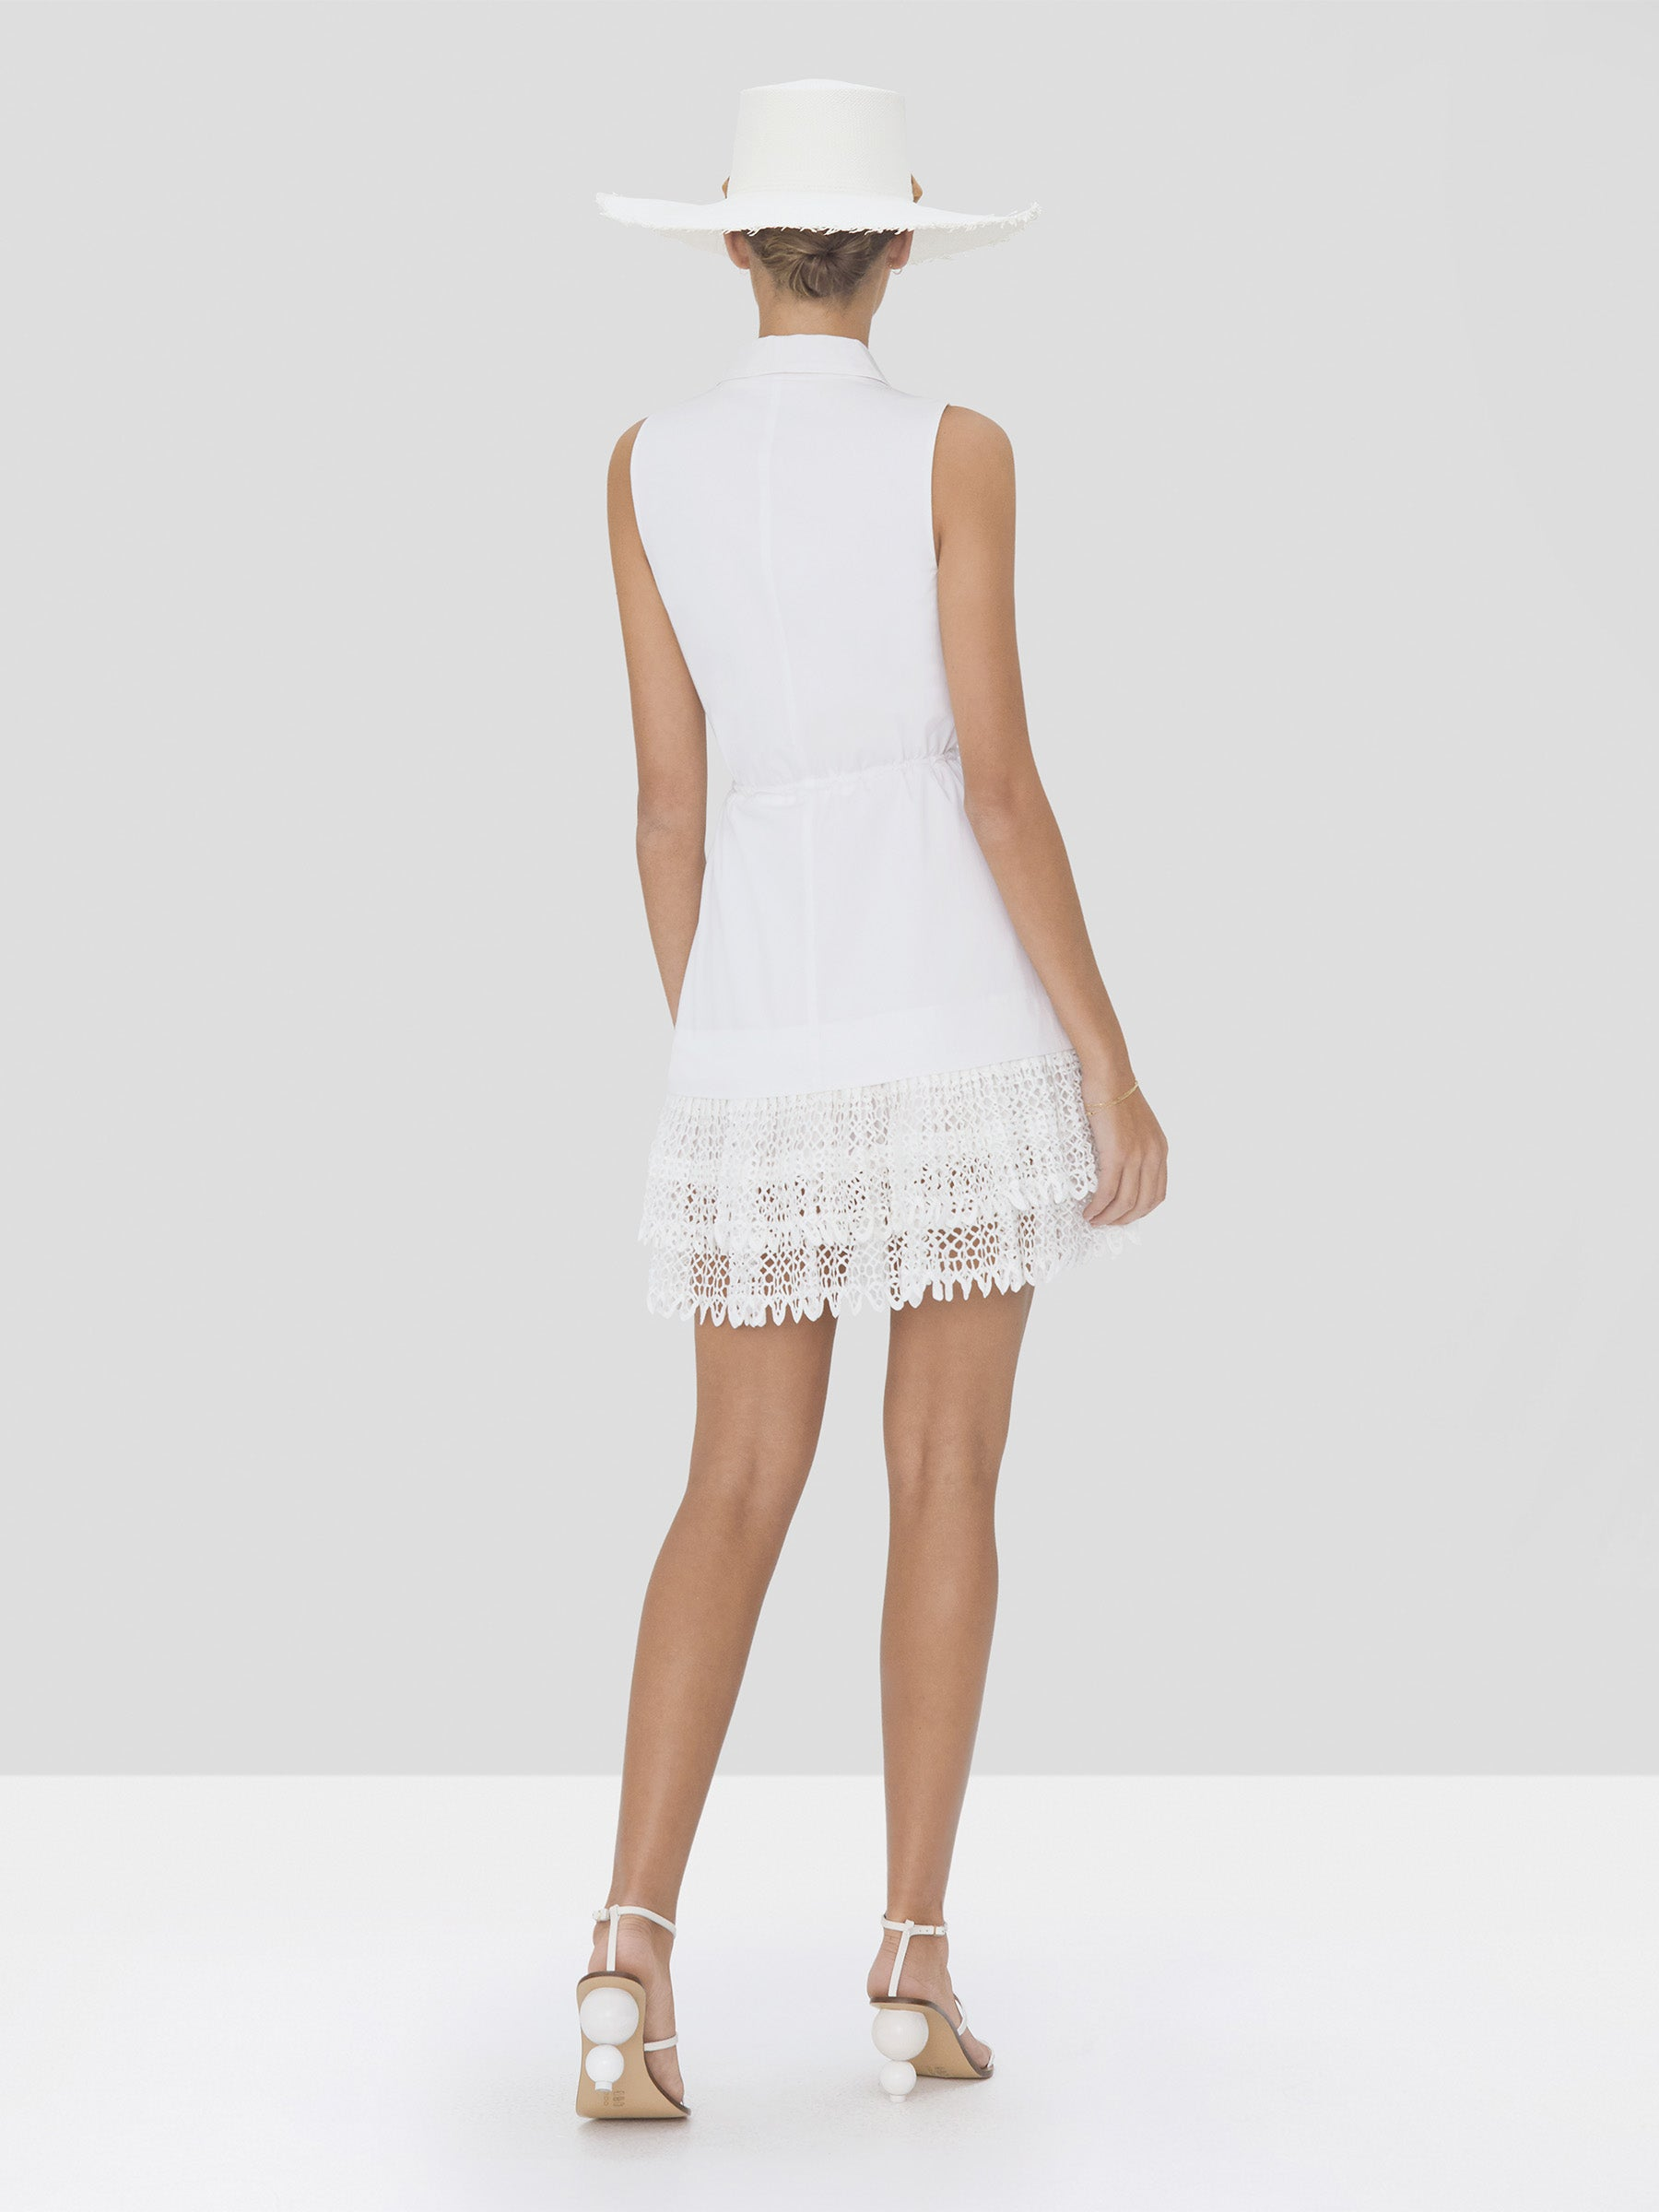 Alexis Clauden Dress in White from Spring Summer 2020 Collection - Rear View